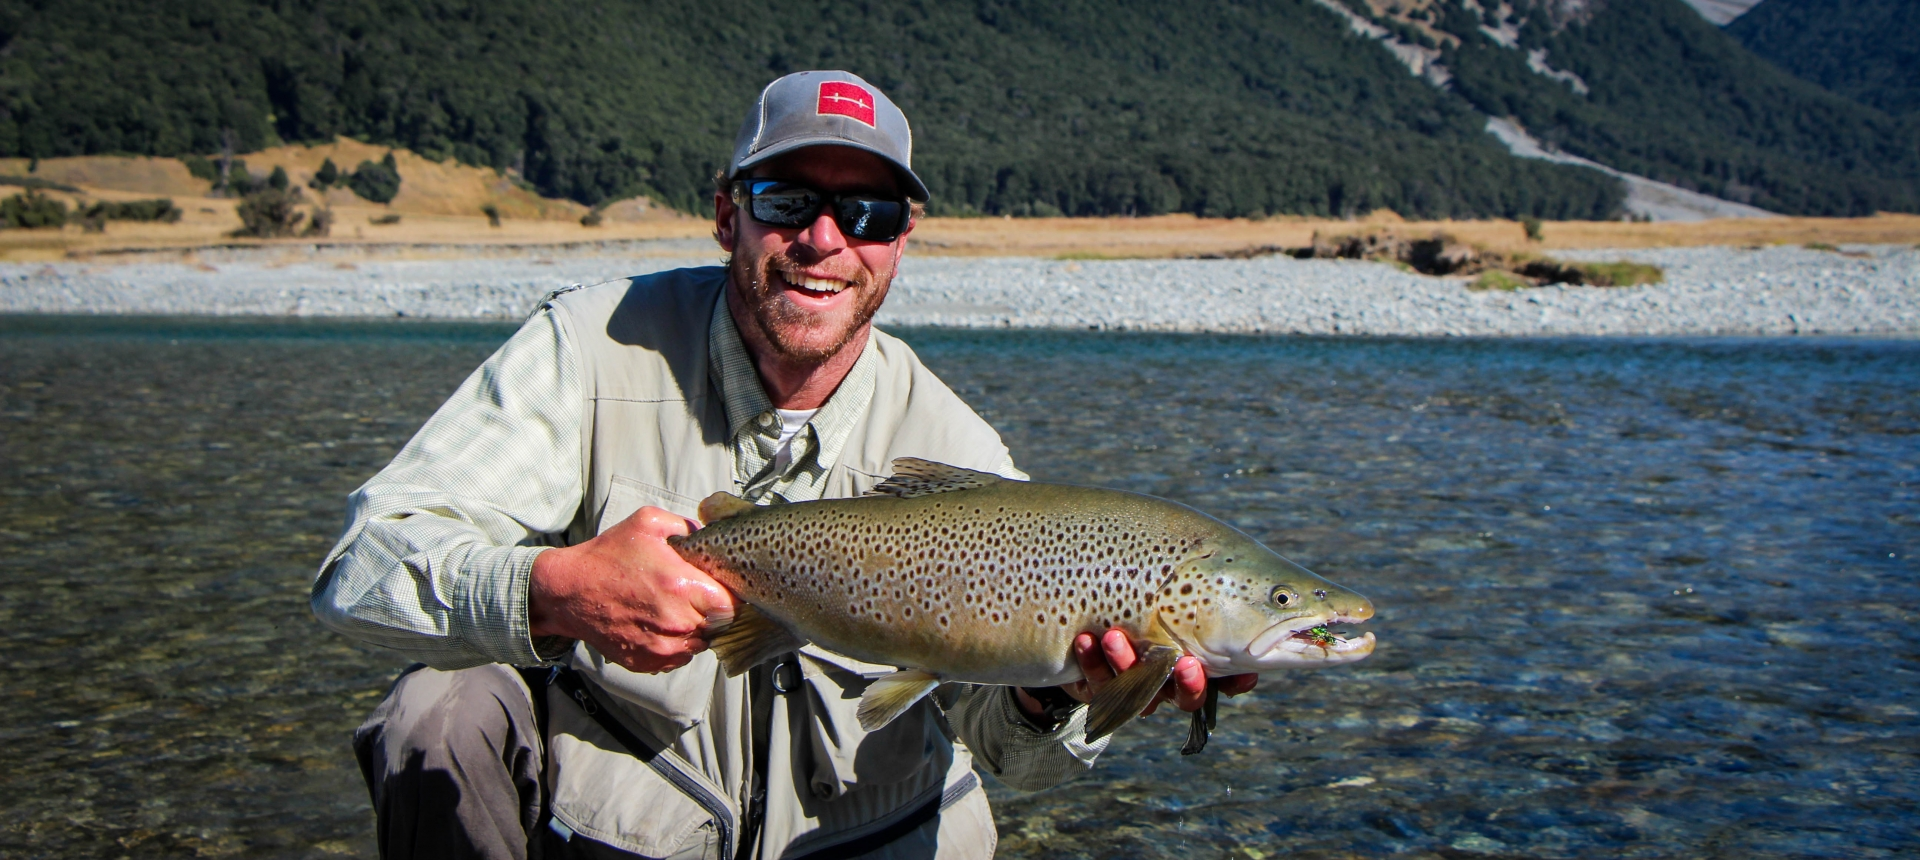 Book your fly fishing trip to New Zealand